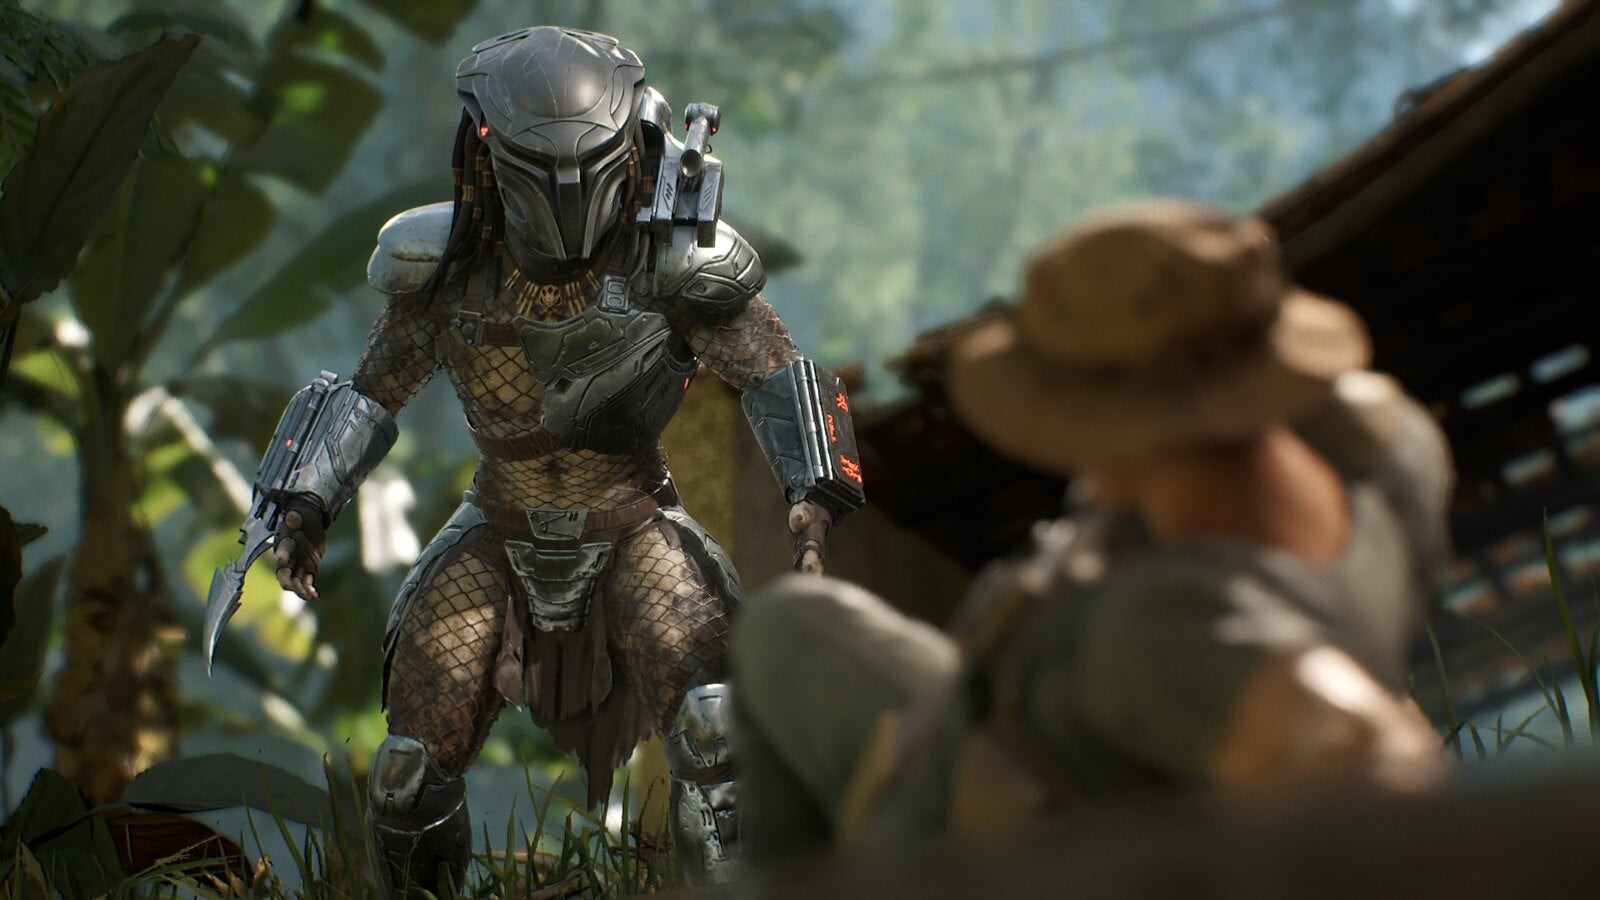 Predator: Hunting Grounds Is Only Fun When The Predator Is Around